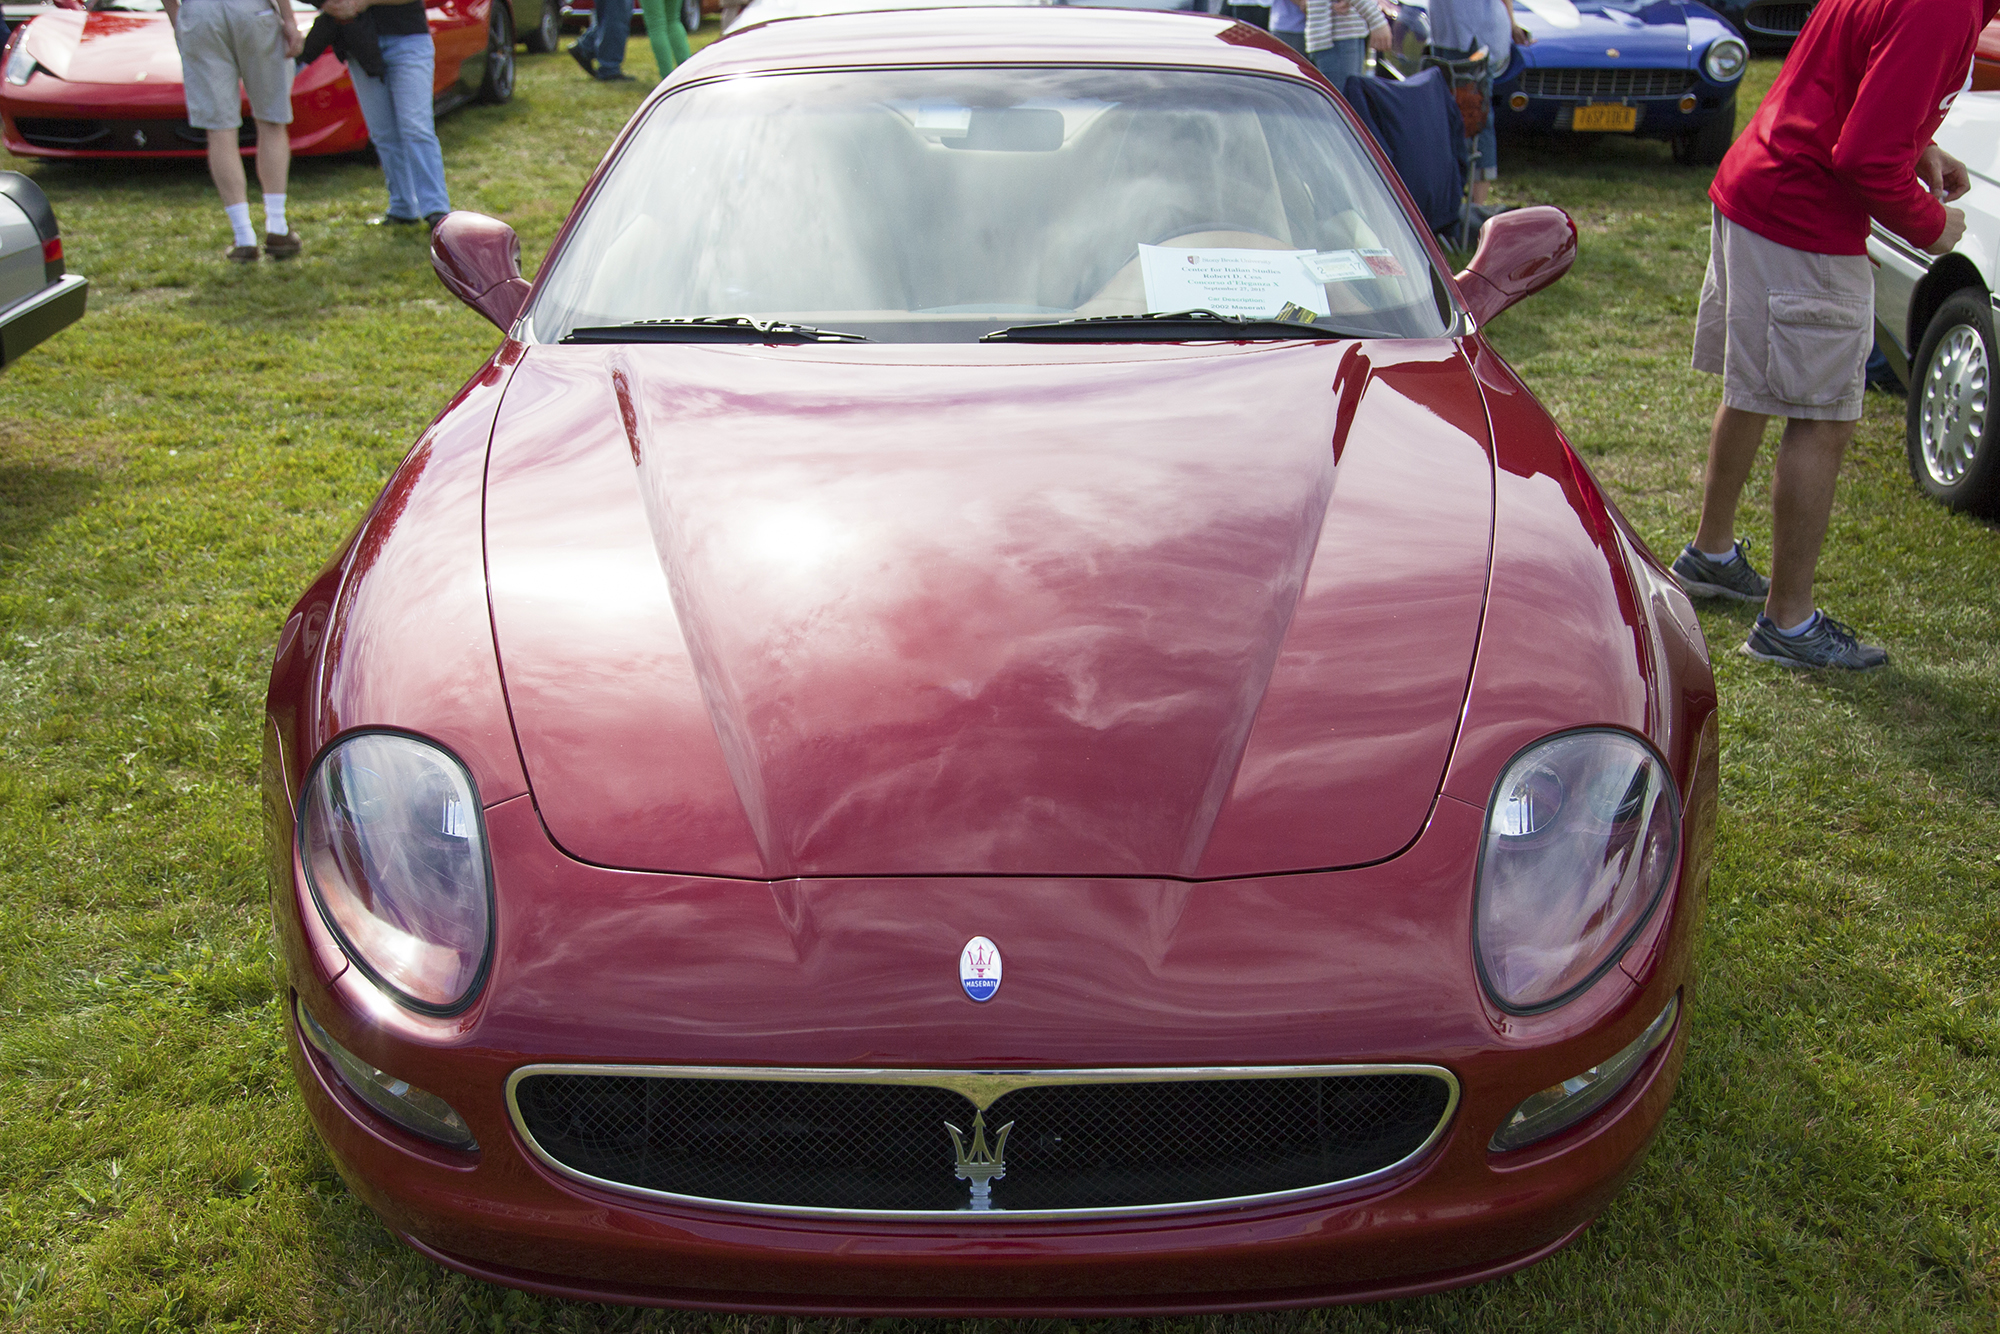 A 2002 Maserati Coupe at the Concorso d'Eleganza X. GISELLE MIRANDA/THE STATESMAN